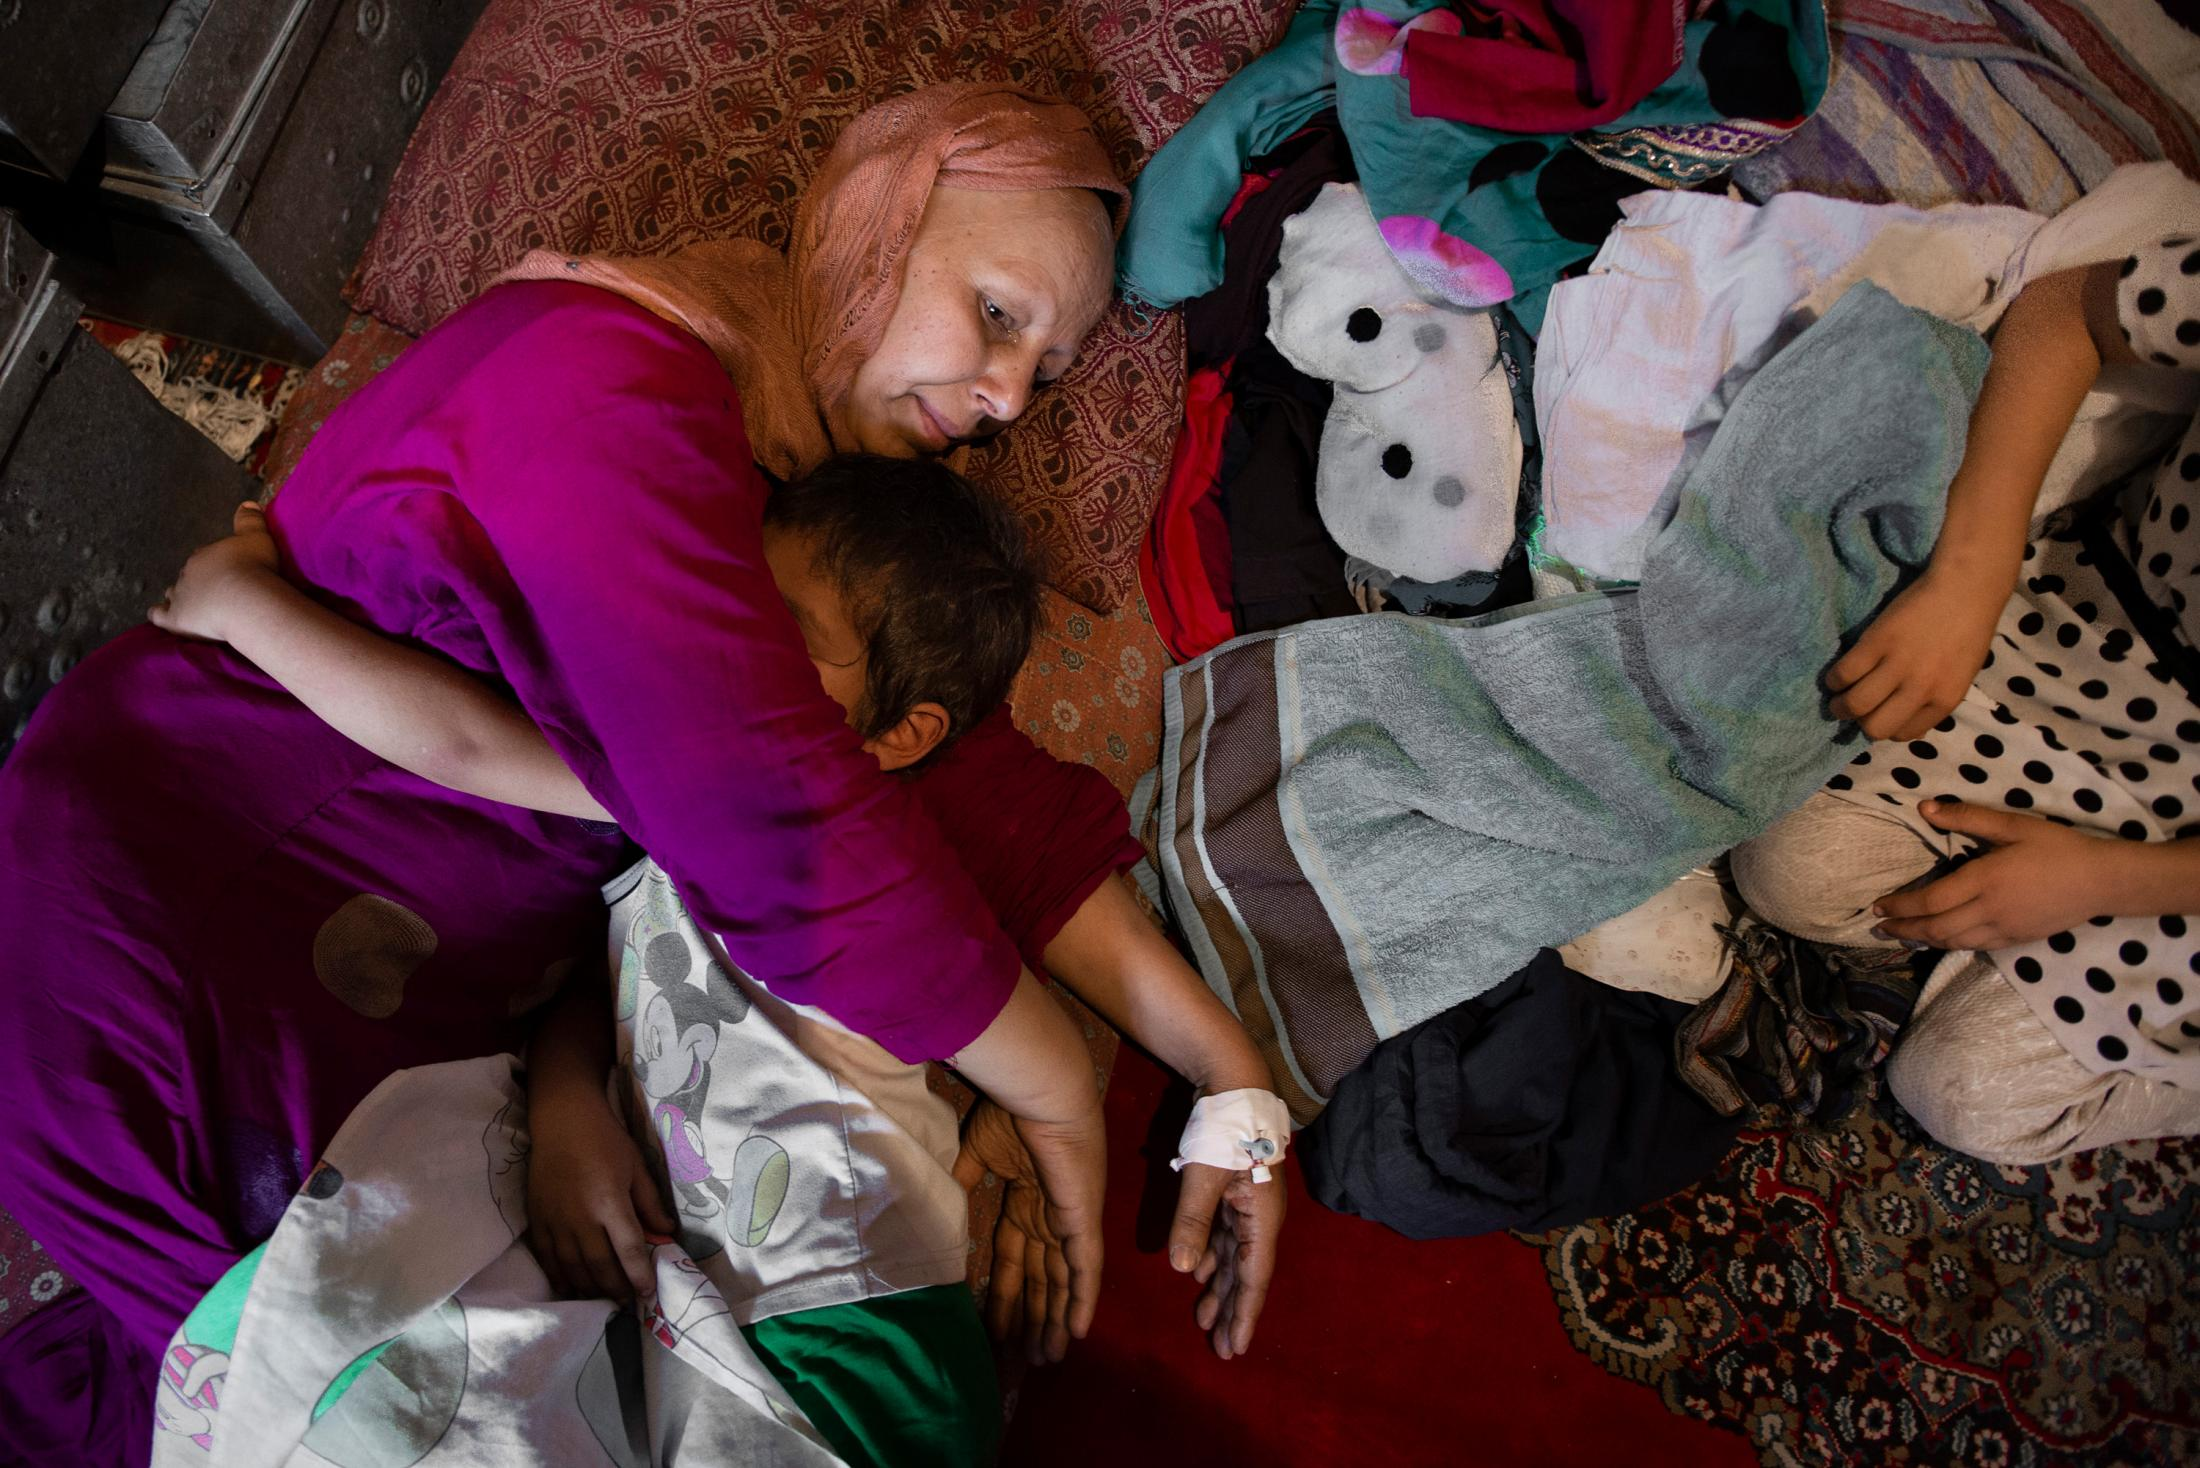 KABUL, AFGHANISTAN | 2017-07-17 | Parwin (44), feeling weak after receiving her 7th chemo treatment, lay down to rest in their small two room house in the neighbourhood of Fazel Beig. Her youngest son, Milad (4), noticing her mom is not feeling well lays down next her, hugging her tight.Darwin, herself, finished the 12 years of high school in 6 years, by studying on her own and taking exams. At age of 16, she entered the med school. When she was 19, after finishing her third year of university, she married her husband who is illiterate, and forced her to abandon her studies. She stayed home and raised her 8 kids, 2 of which have died from sickness. Despite her husband not liking his daughters going to school, Parwin fought for every one of them. Her oldest daughter, Fatema (17) just graduated from high school and wants to go to university to become a midwife. Her youngest daughter, just being 8, is in grade 5. Parwin and Fatema's greatest fear is that if she doesn't survive the cancer, the father will marry off the older daughters and stop them from going to school.